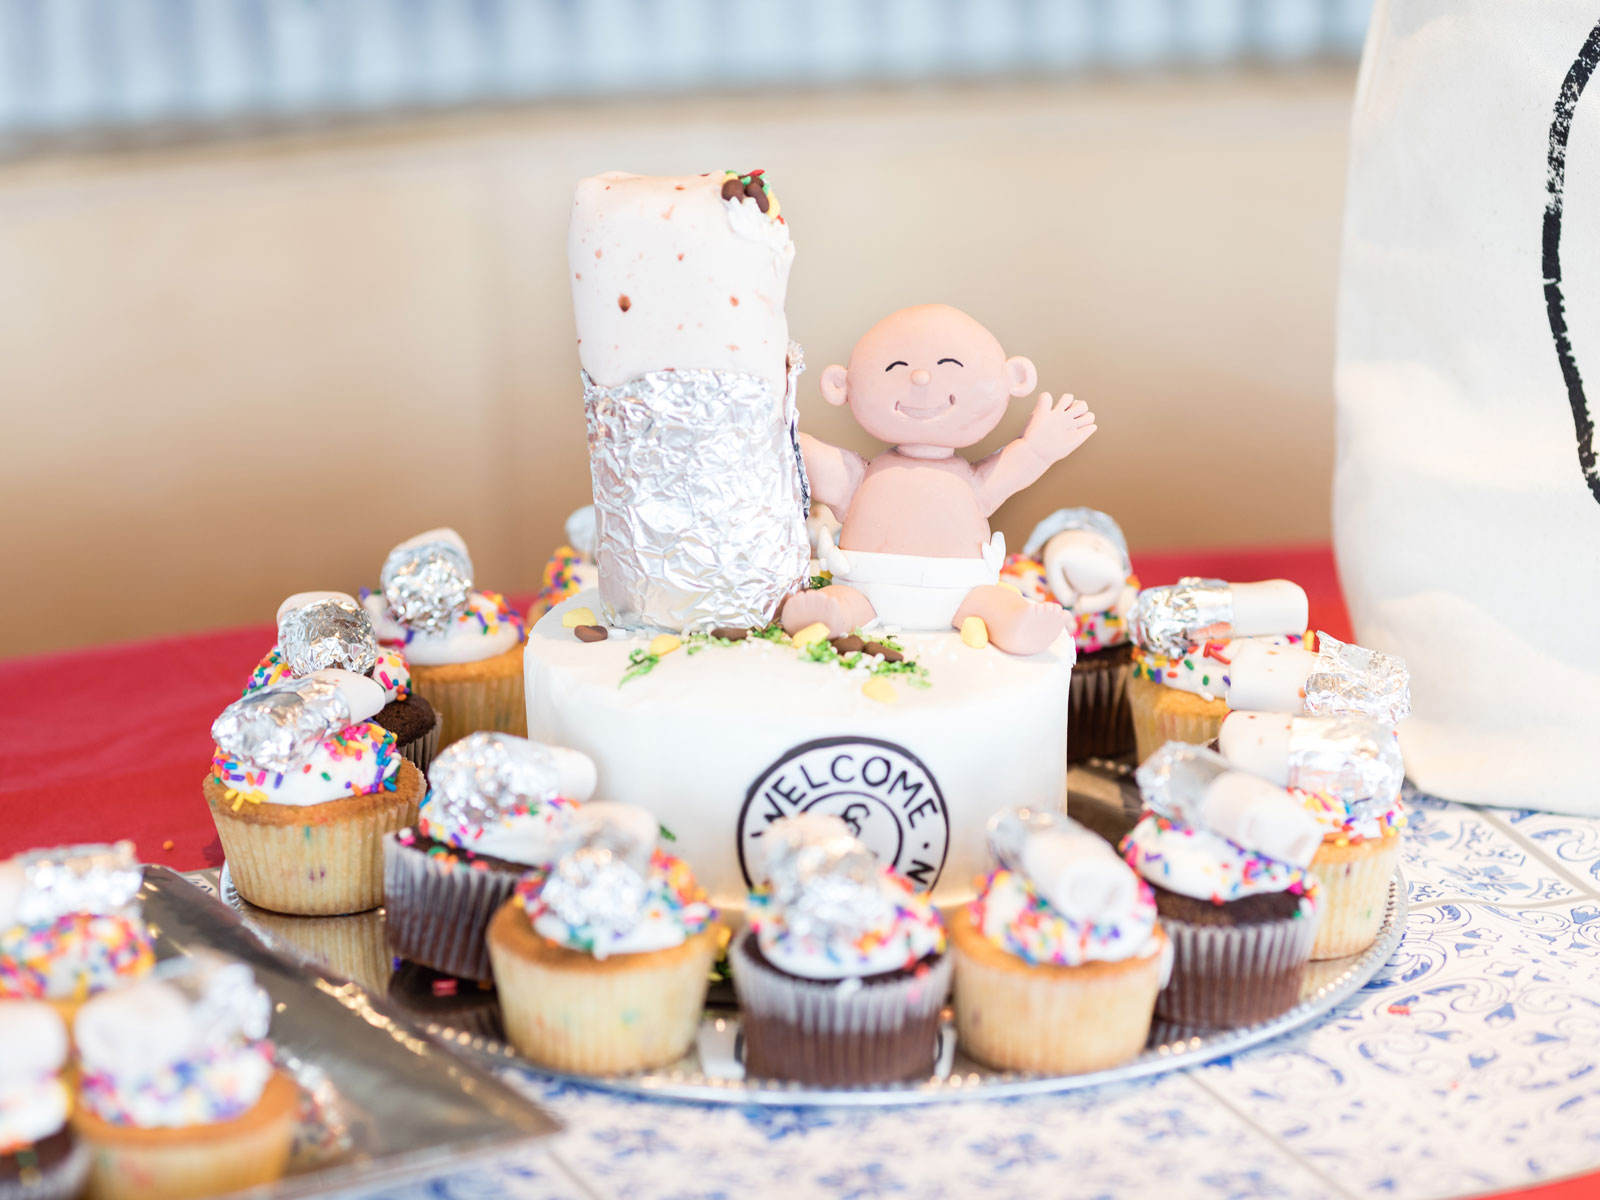 chipotle-baby-shower-cake-FT-BLOG0518.jpg